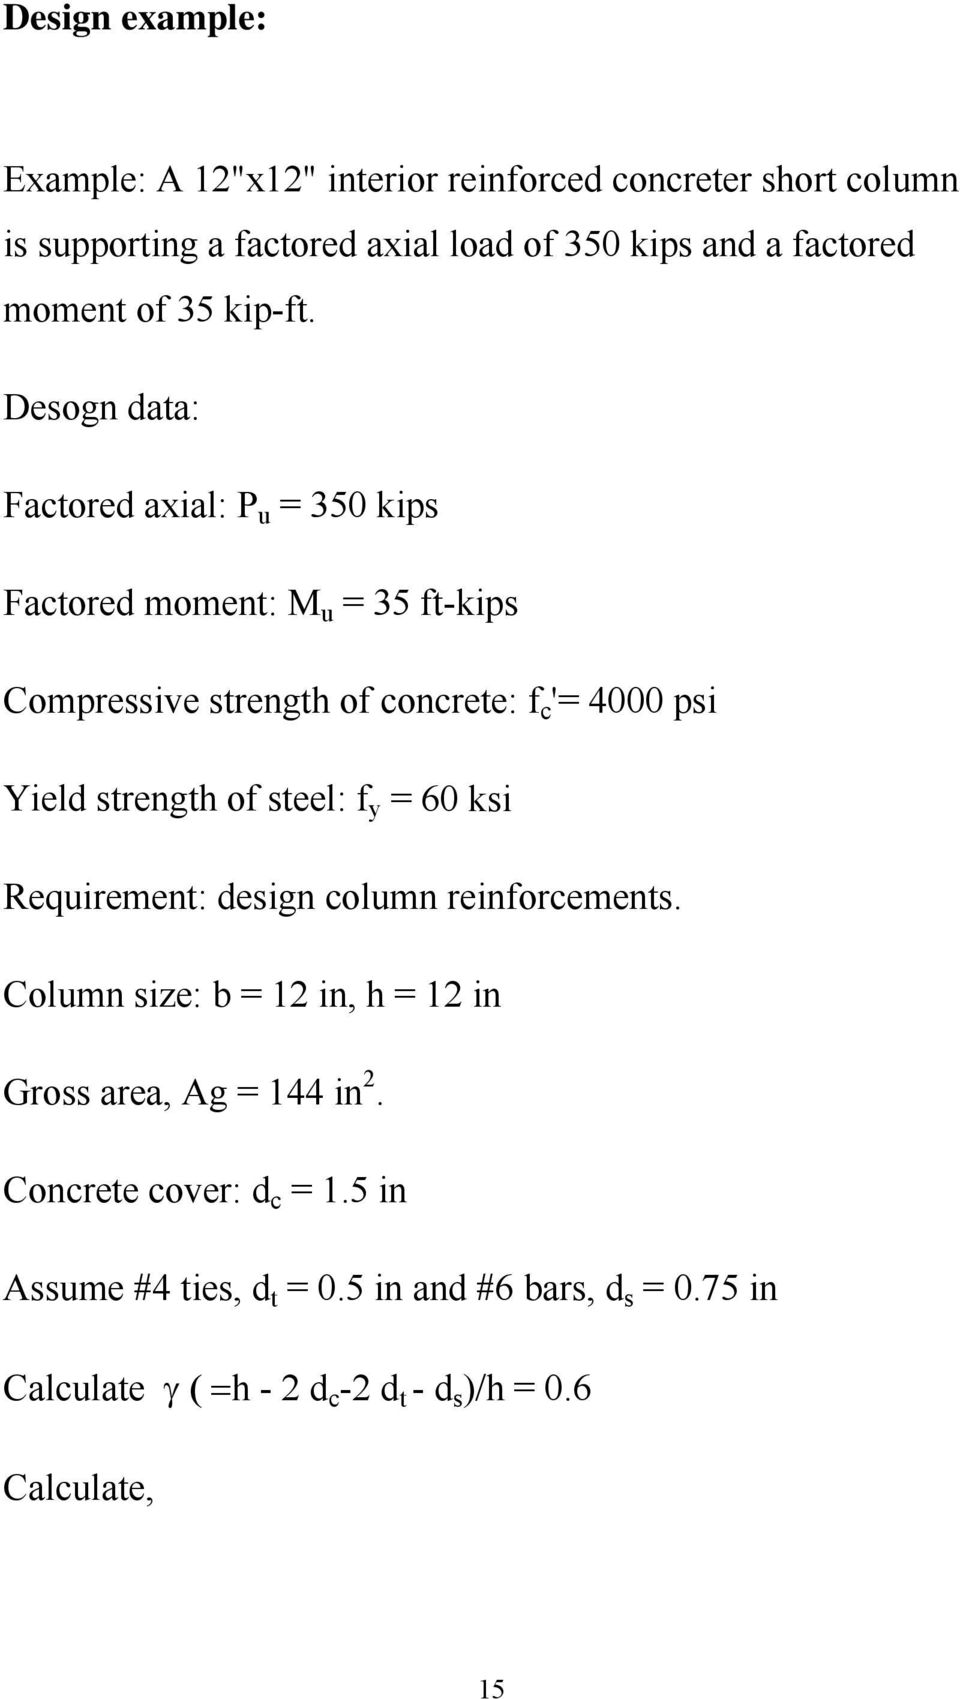 Desogn data: Factored axial: P u = 350 kips Factored moment: M u = 35 ft-kips Compressive strength of concrete: f c '= 4000 psi Yield strength